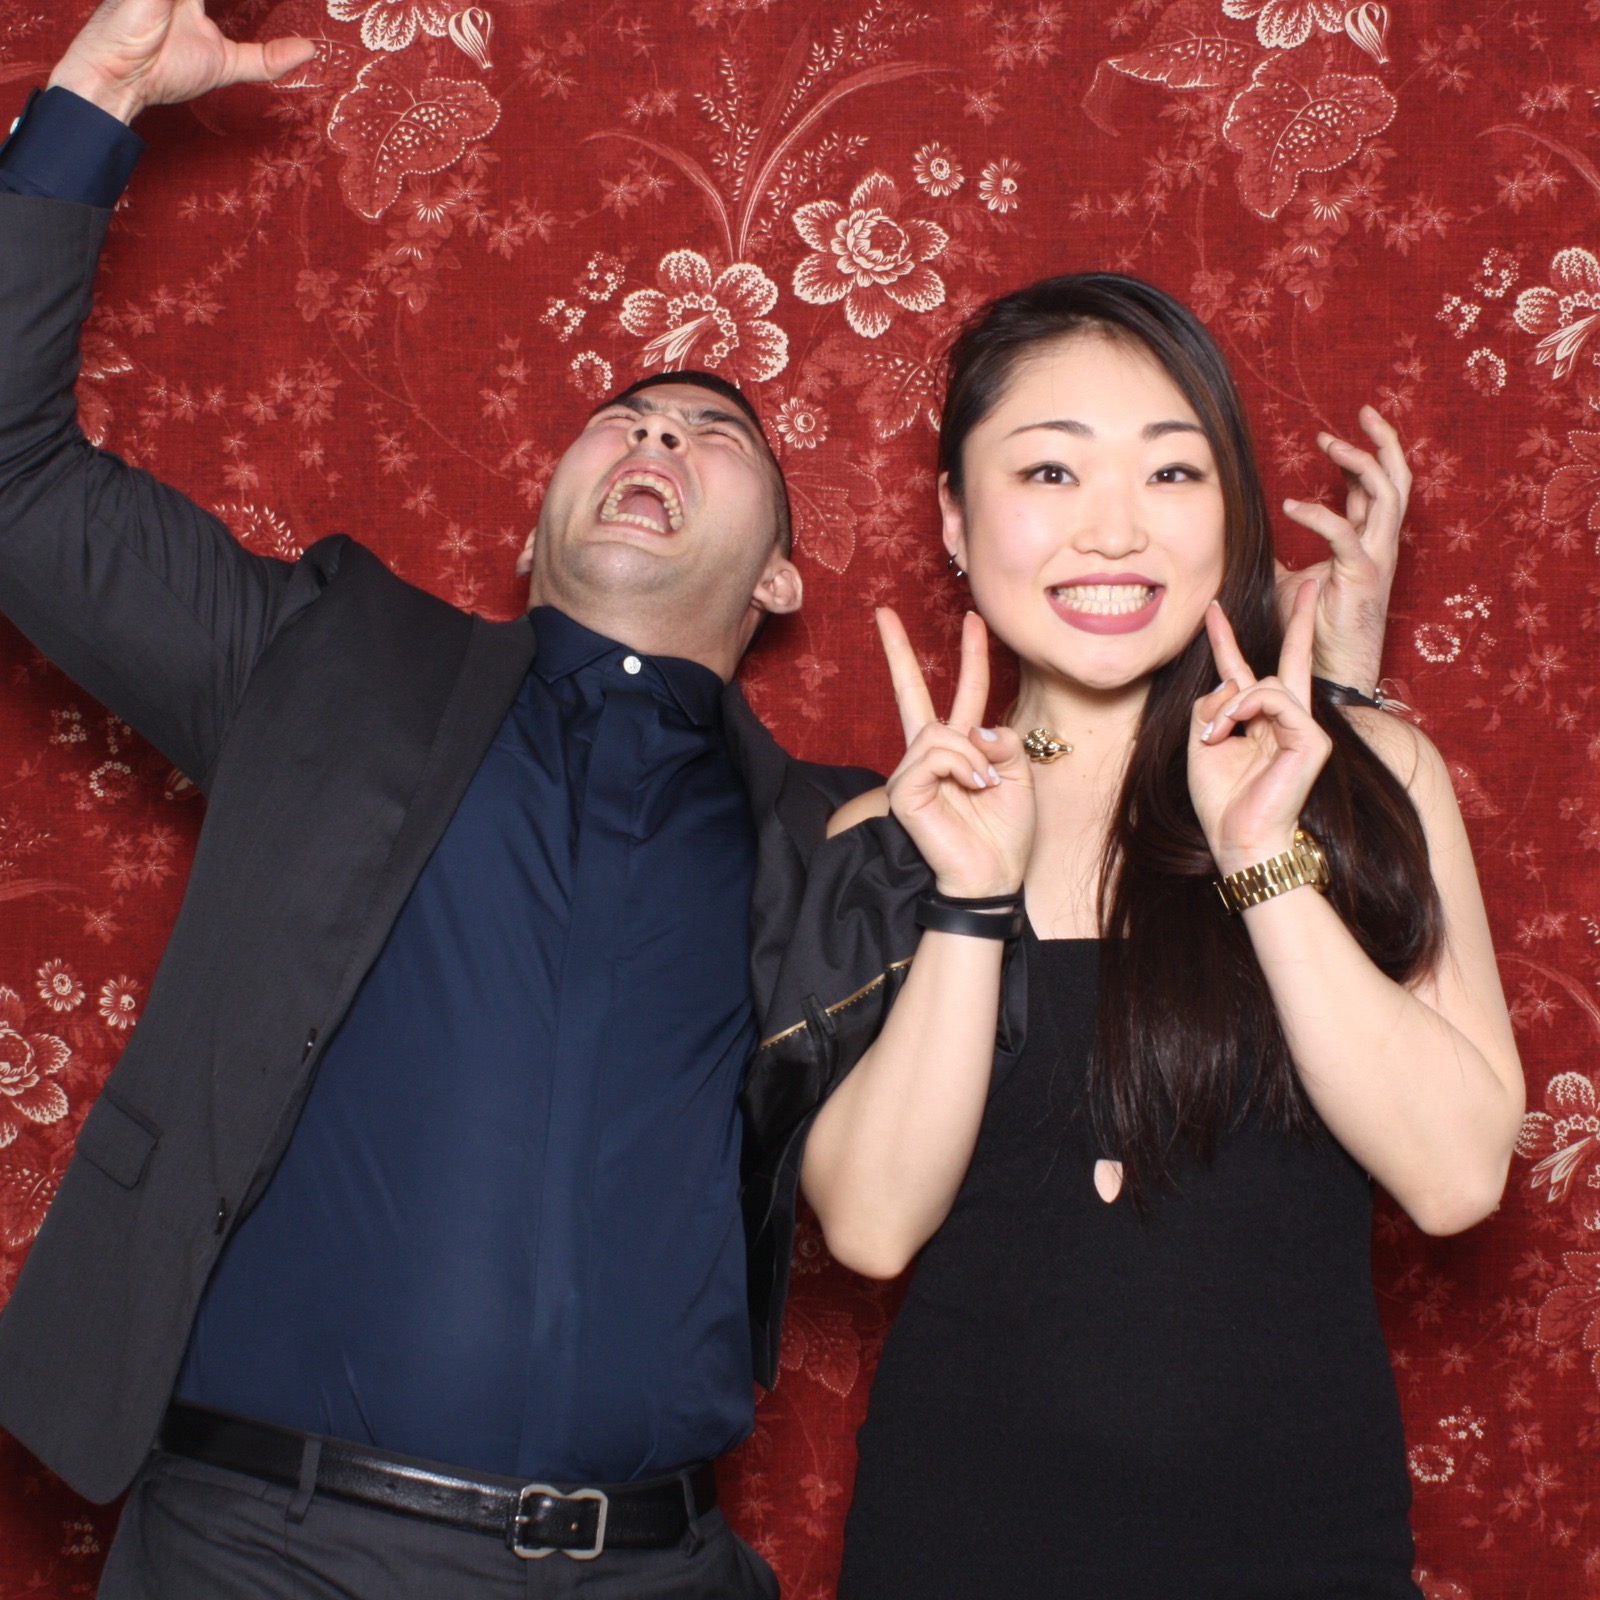 jose_rolon_events_we_love_photobooth2.jpg